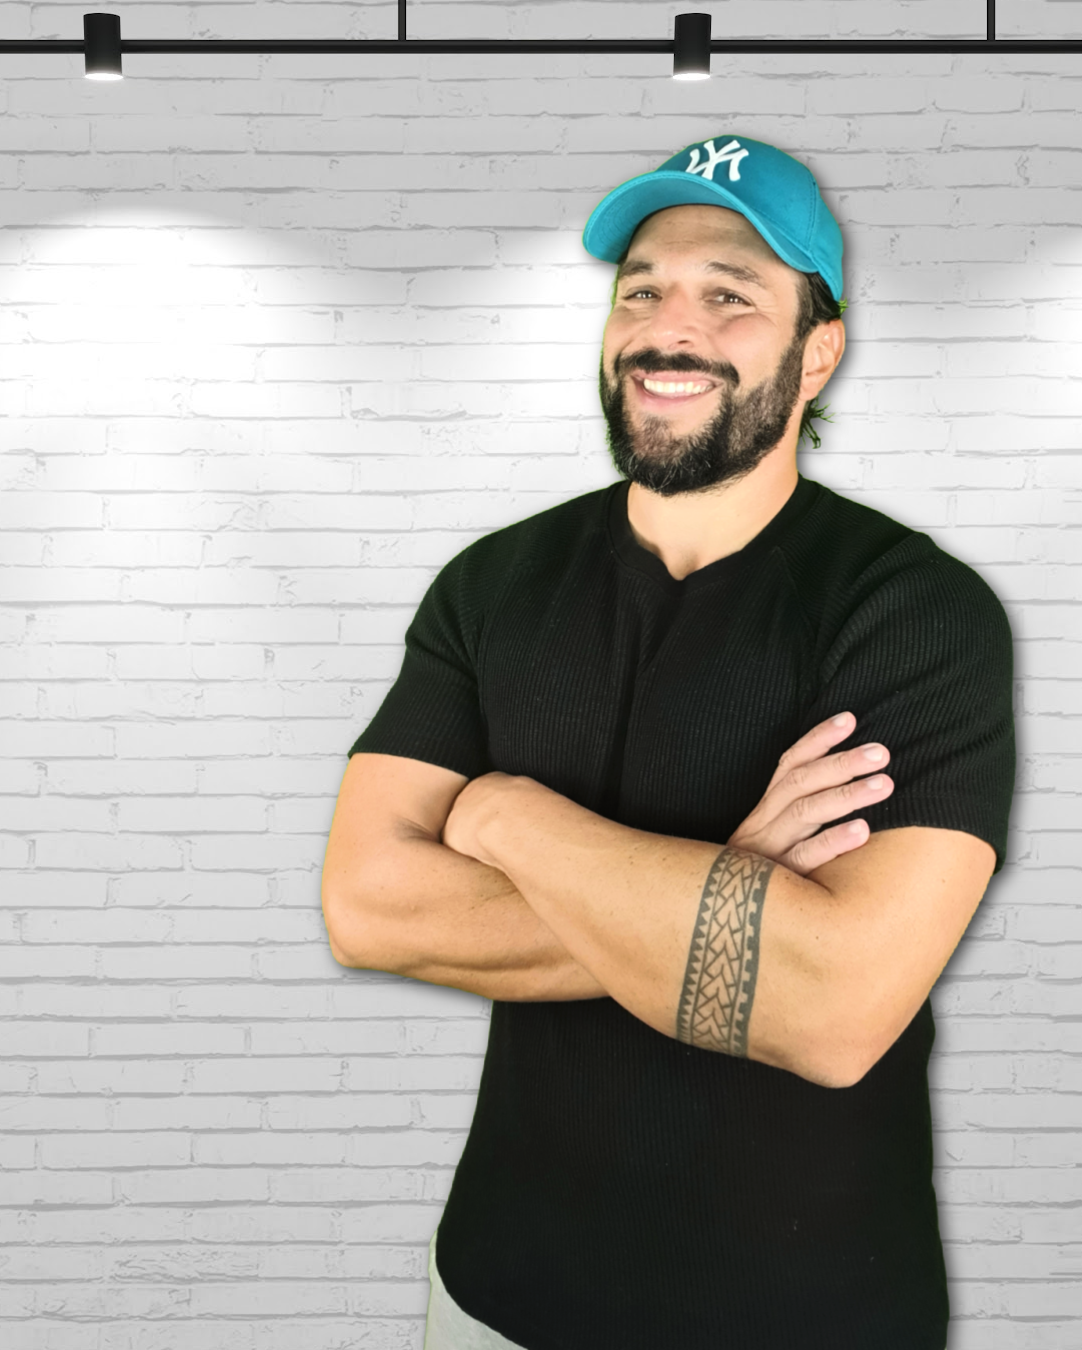 Konstantinos - Try as Many Things as Possible but Every Time You Decide to Do Something, Stick To It and Explore Its Full Potential (Entrepreneur From Greece)